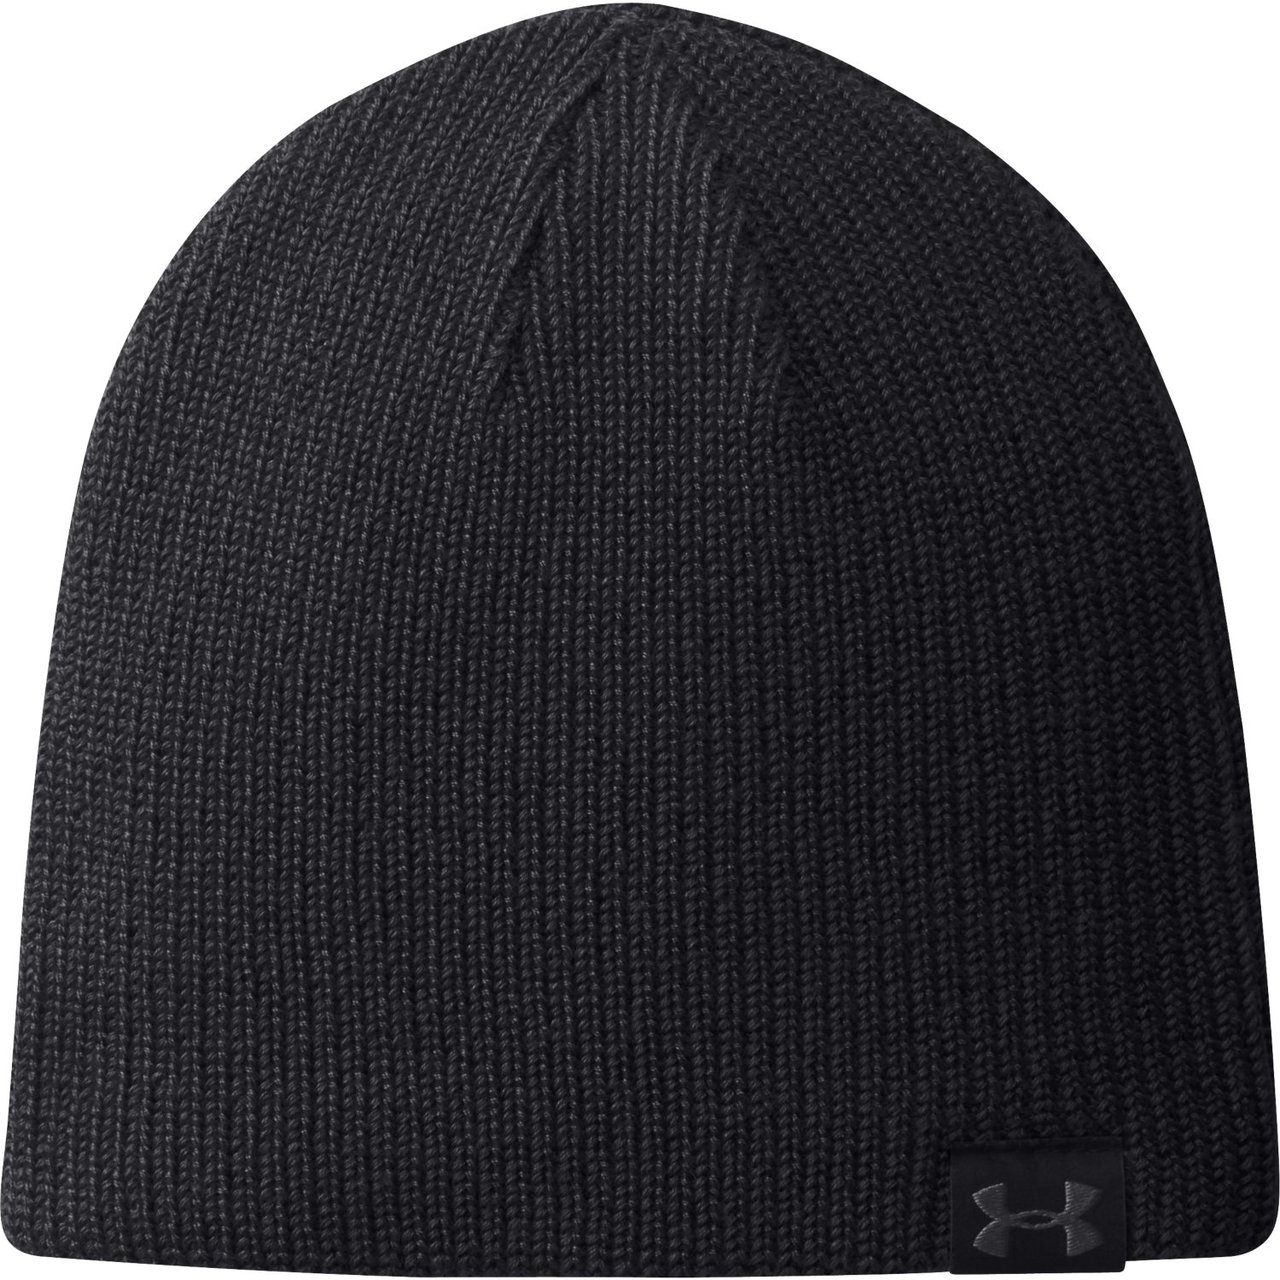 098d4f7d1f1 Under Armour Golf Men s Basic Knit Beanie - Black Graphite (Black)